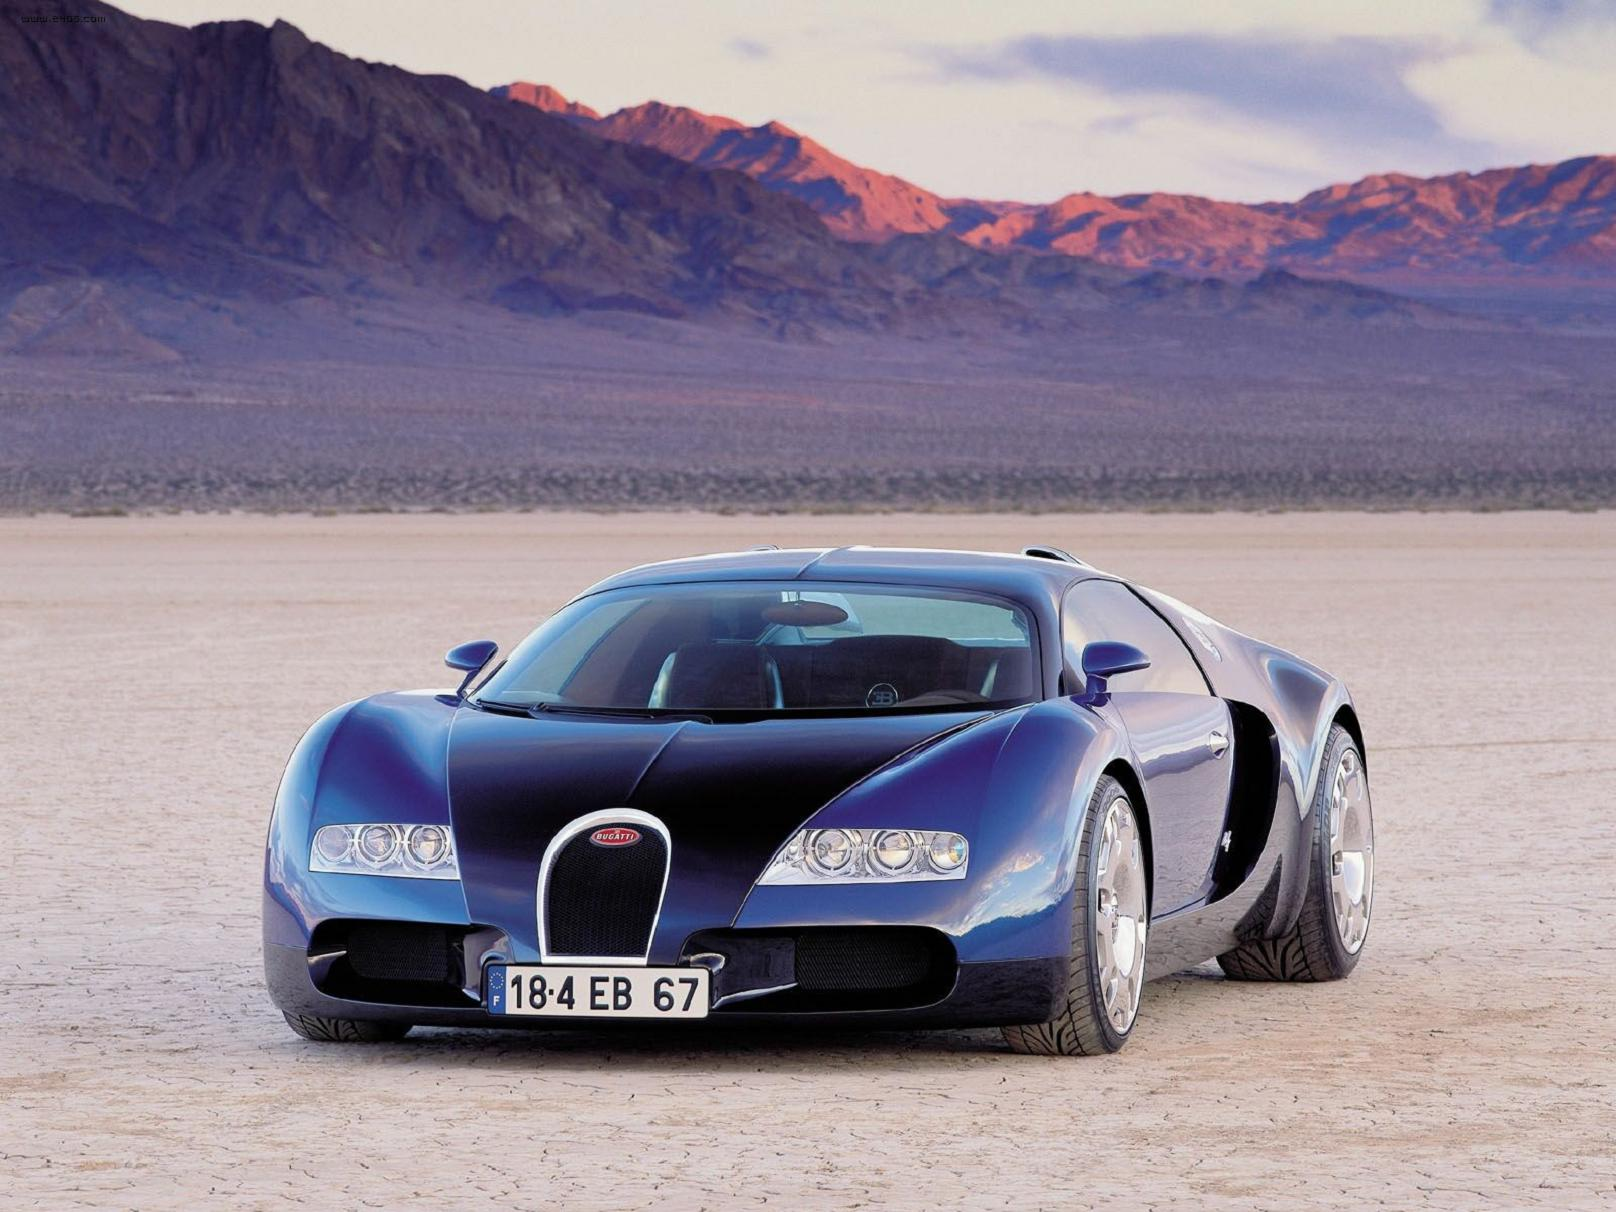 2011 bugatti veyron fuel consumption car news. Black Bedroom Furniture Sets. Home Design Ideas